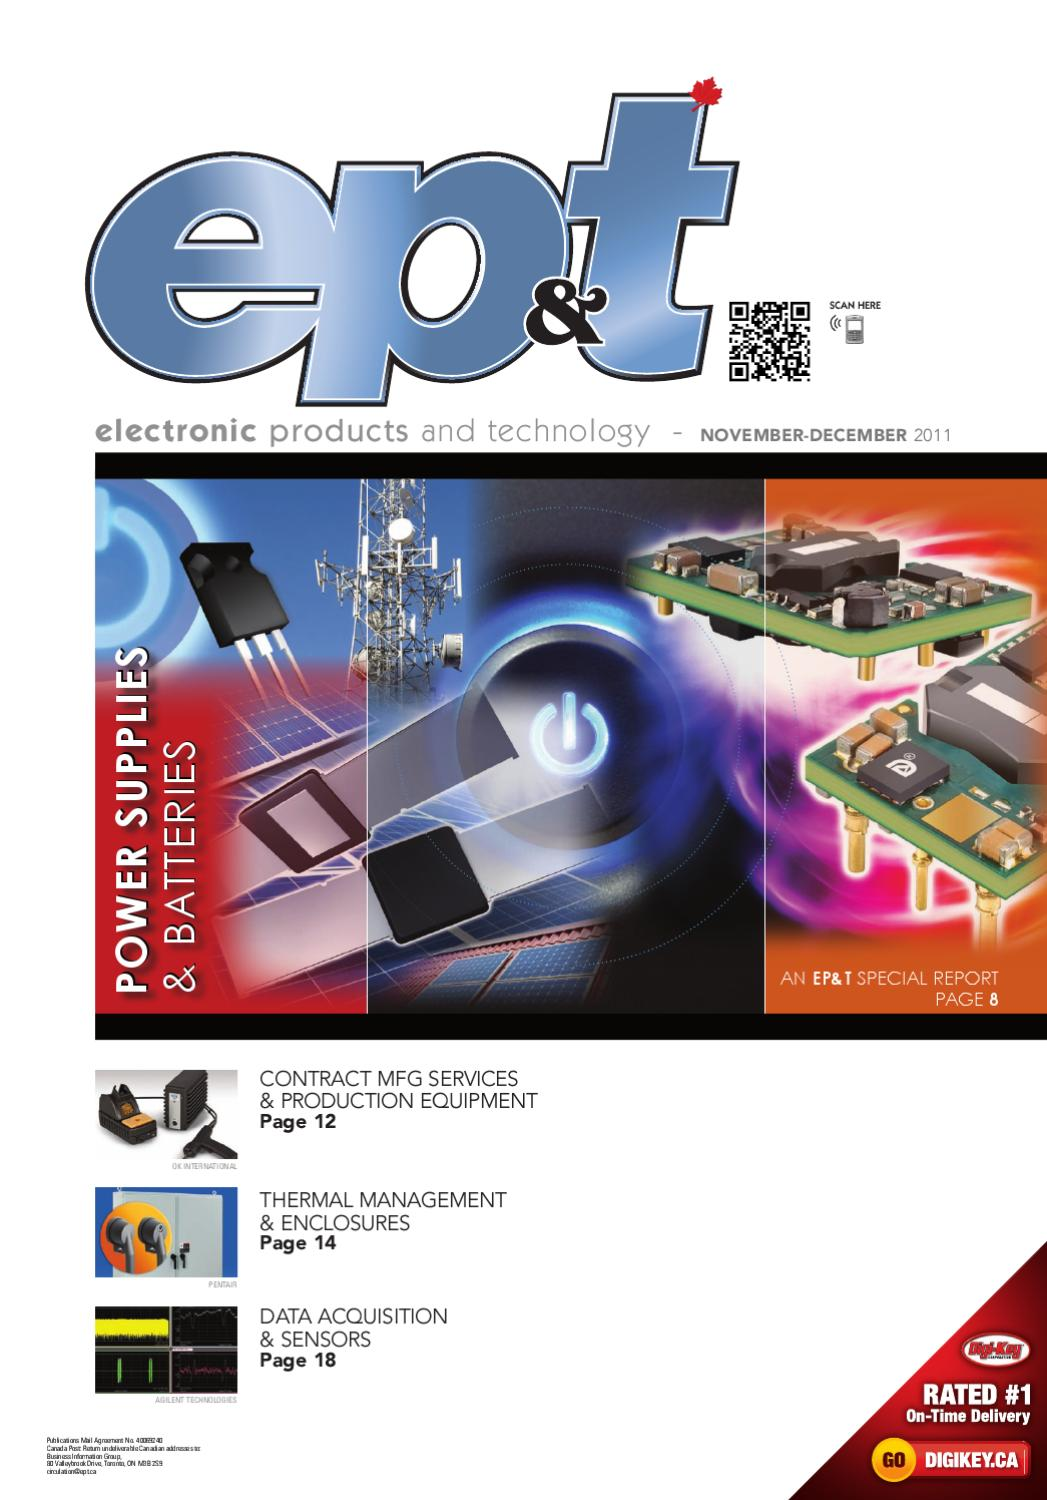 Electronic Products and Technology November December 2011 by